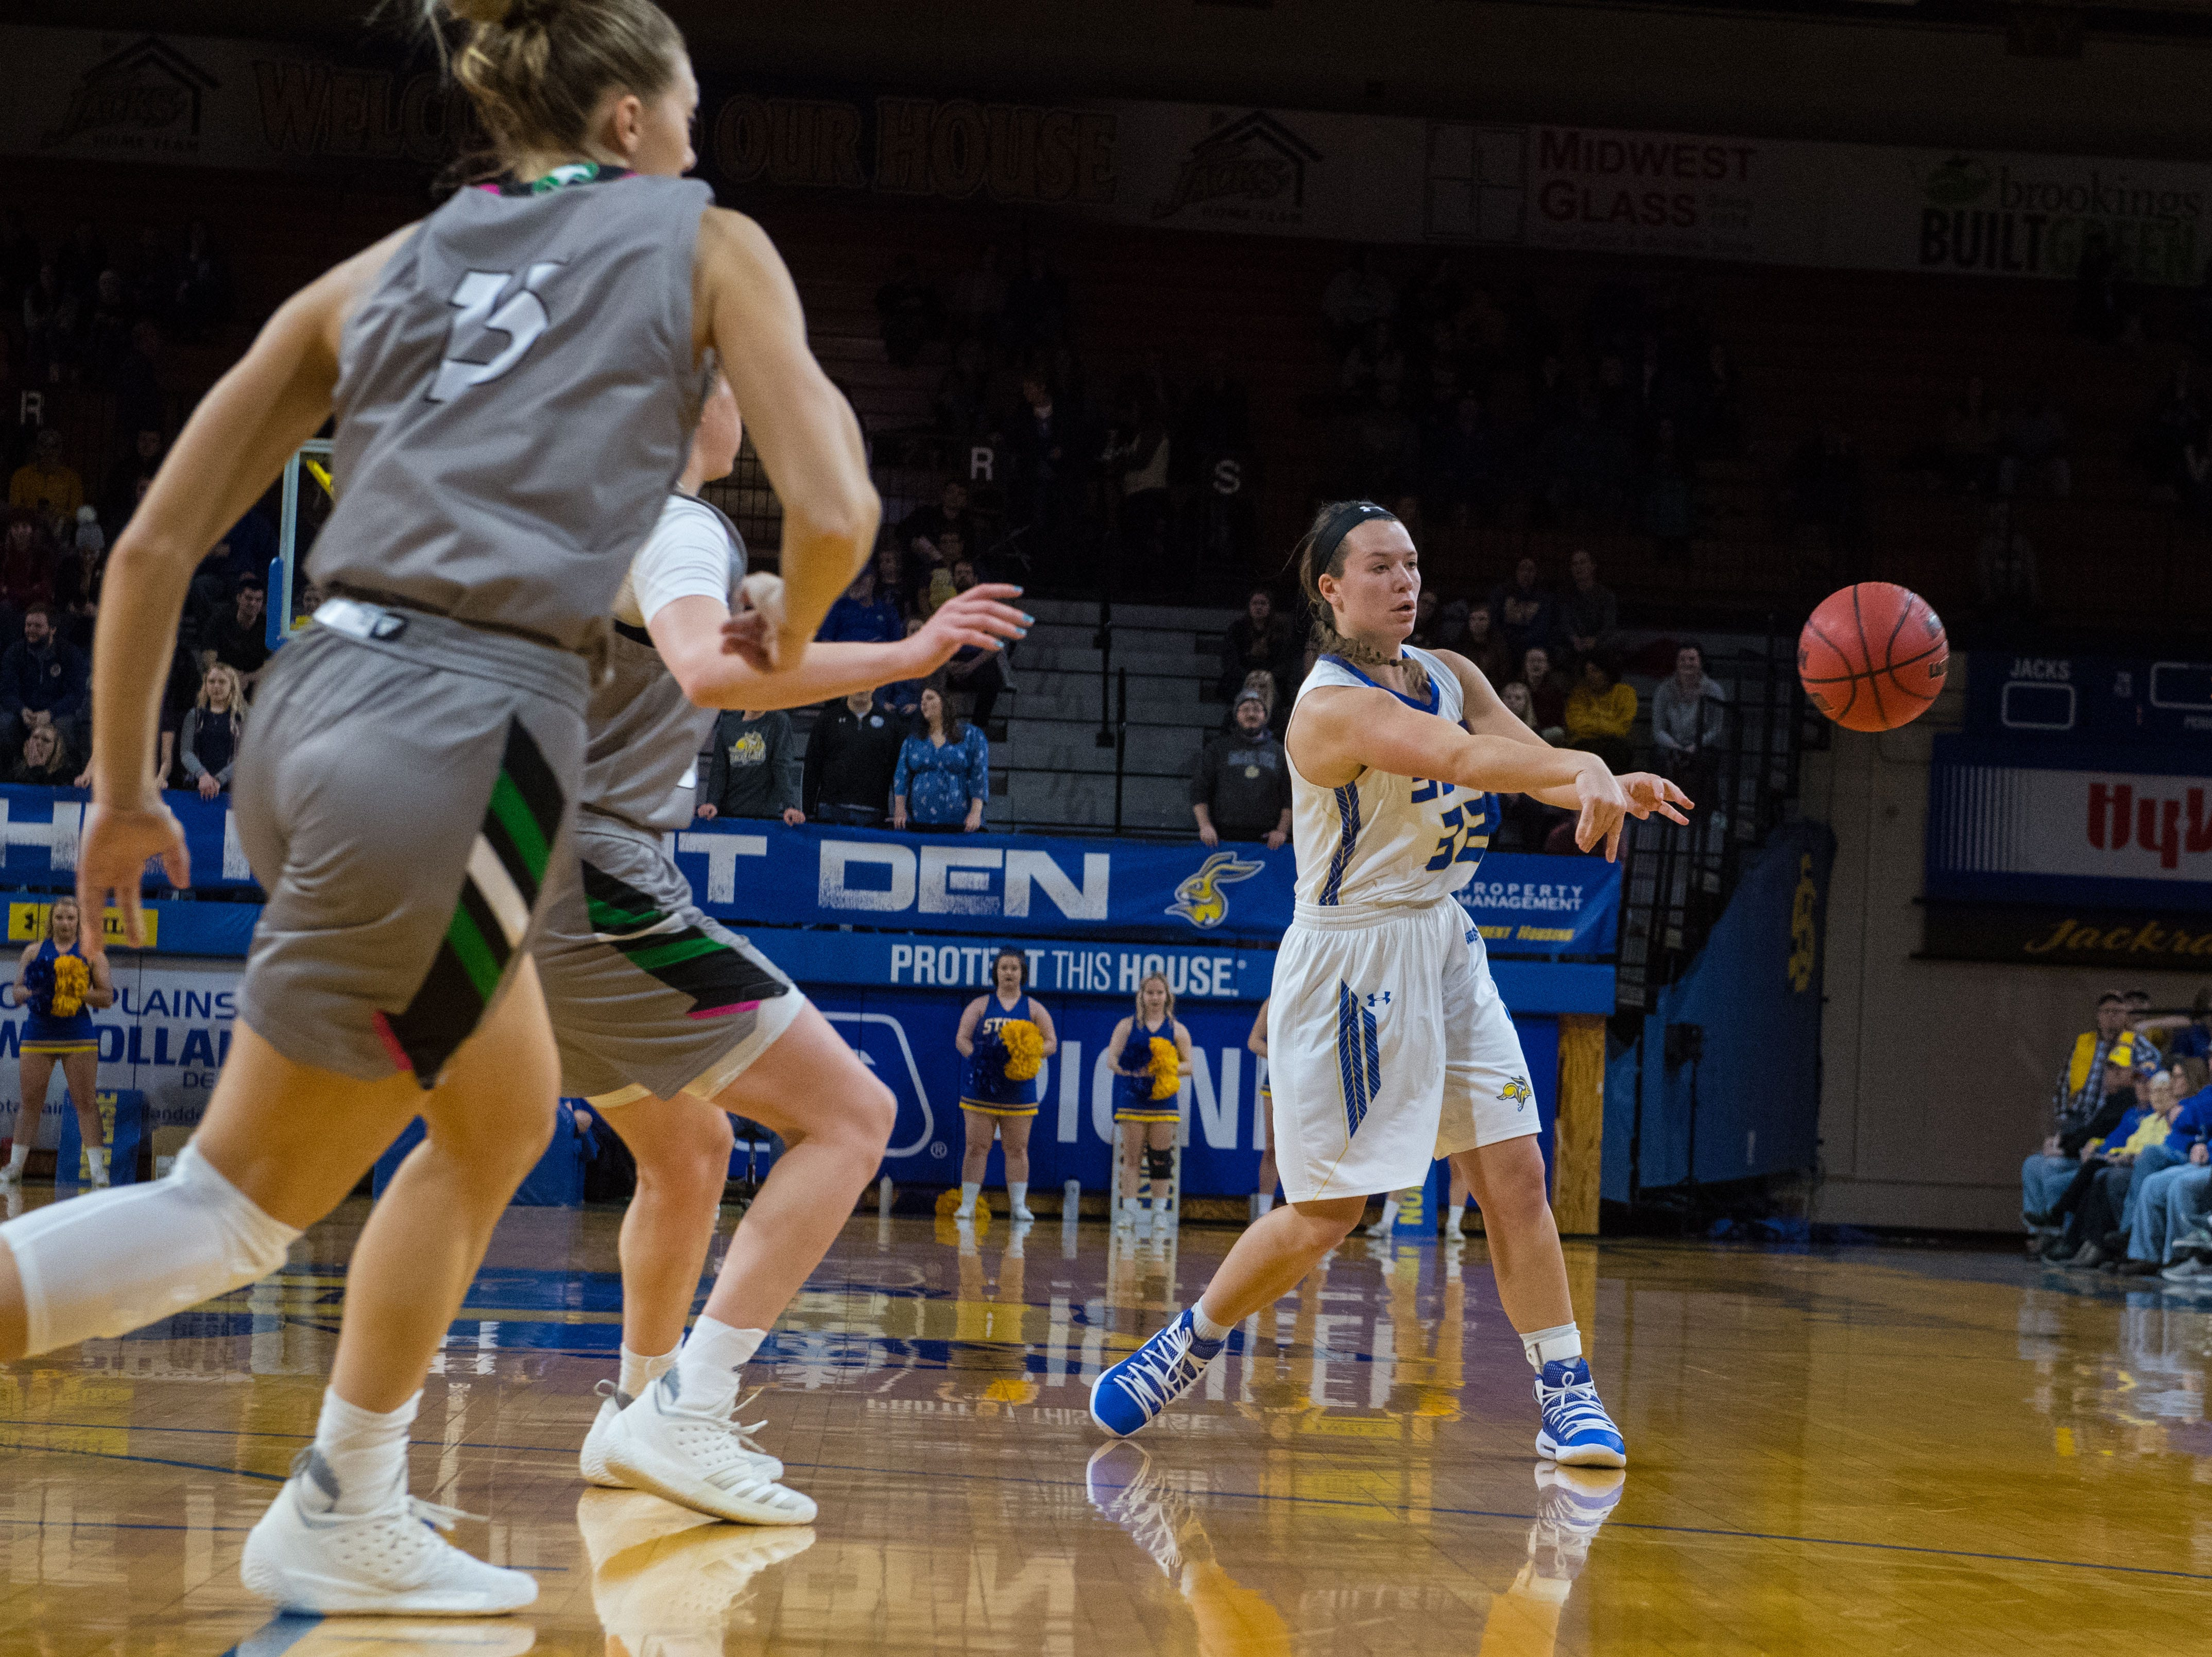 South Dakota State's Sydney Palmer (32) passes the ball during a game against North Dakota in Brookings, S.D., Saturday, Feb. 9, 2019.